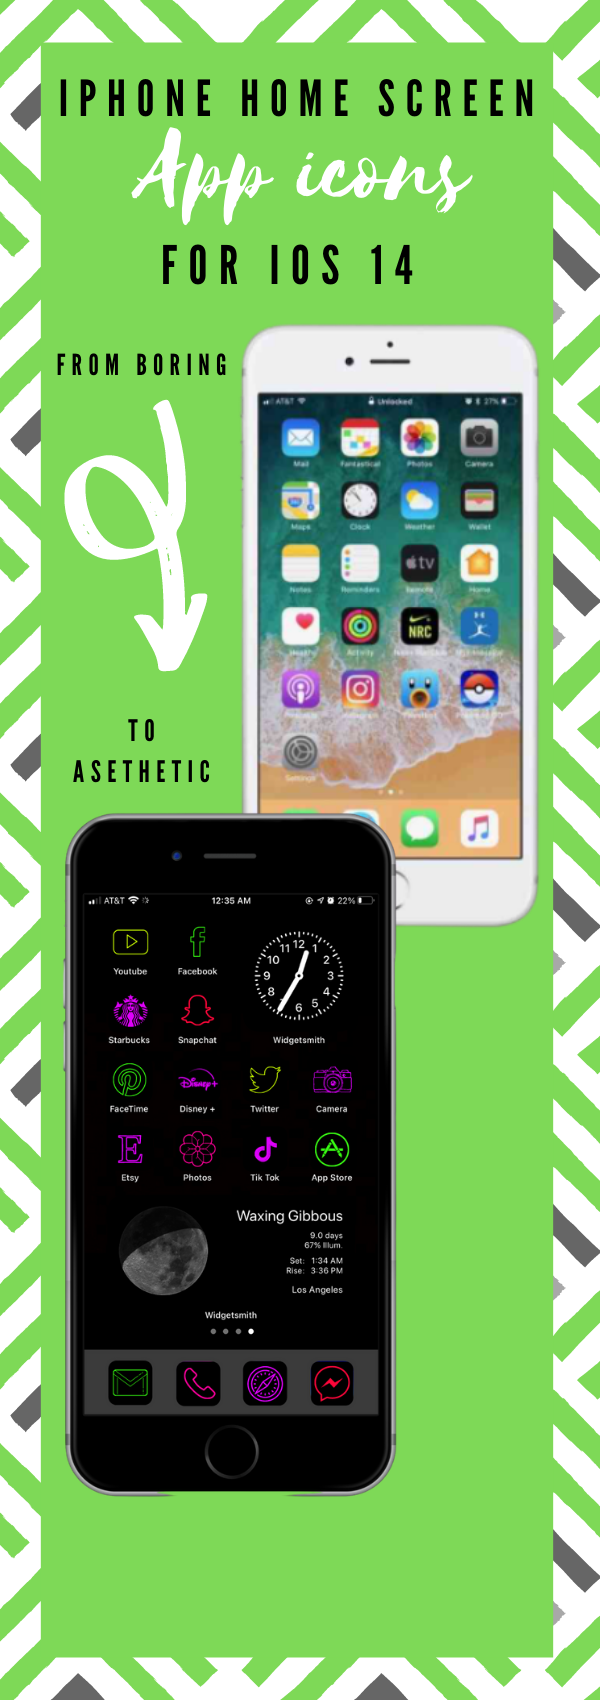 Neon app icons aesthetic to customize home screen!